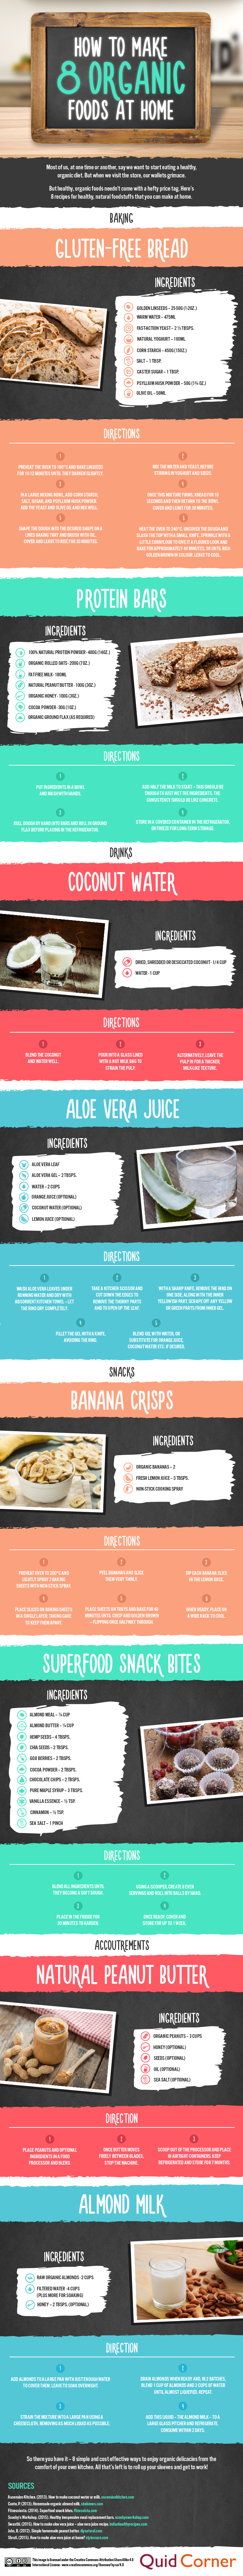 8 Organic Foods You Can Make At Home And Save Your Money Infographic